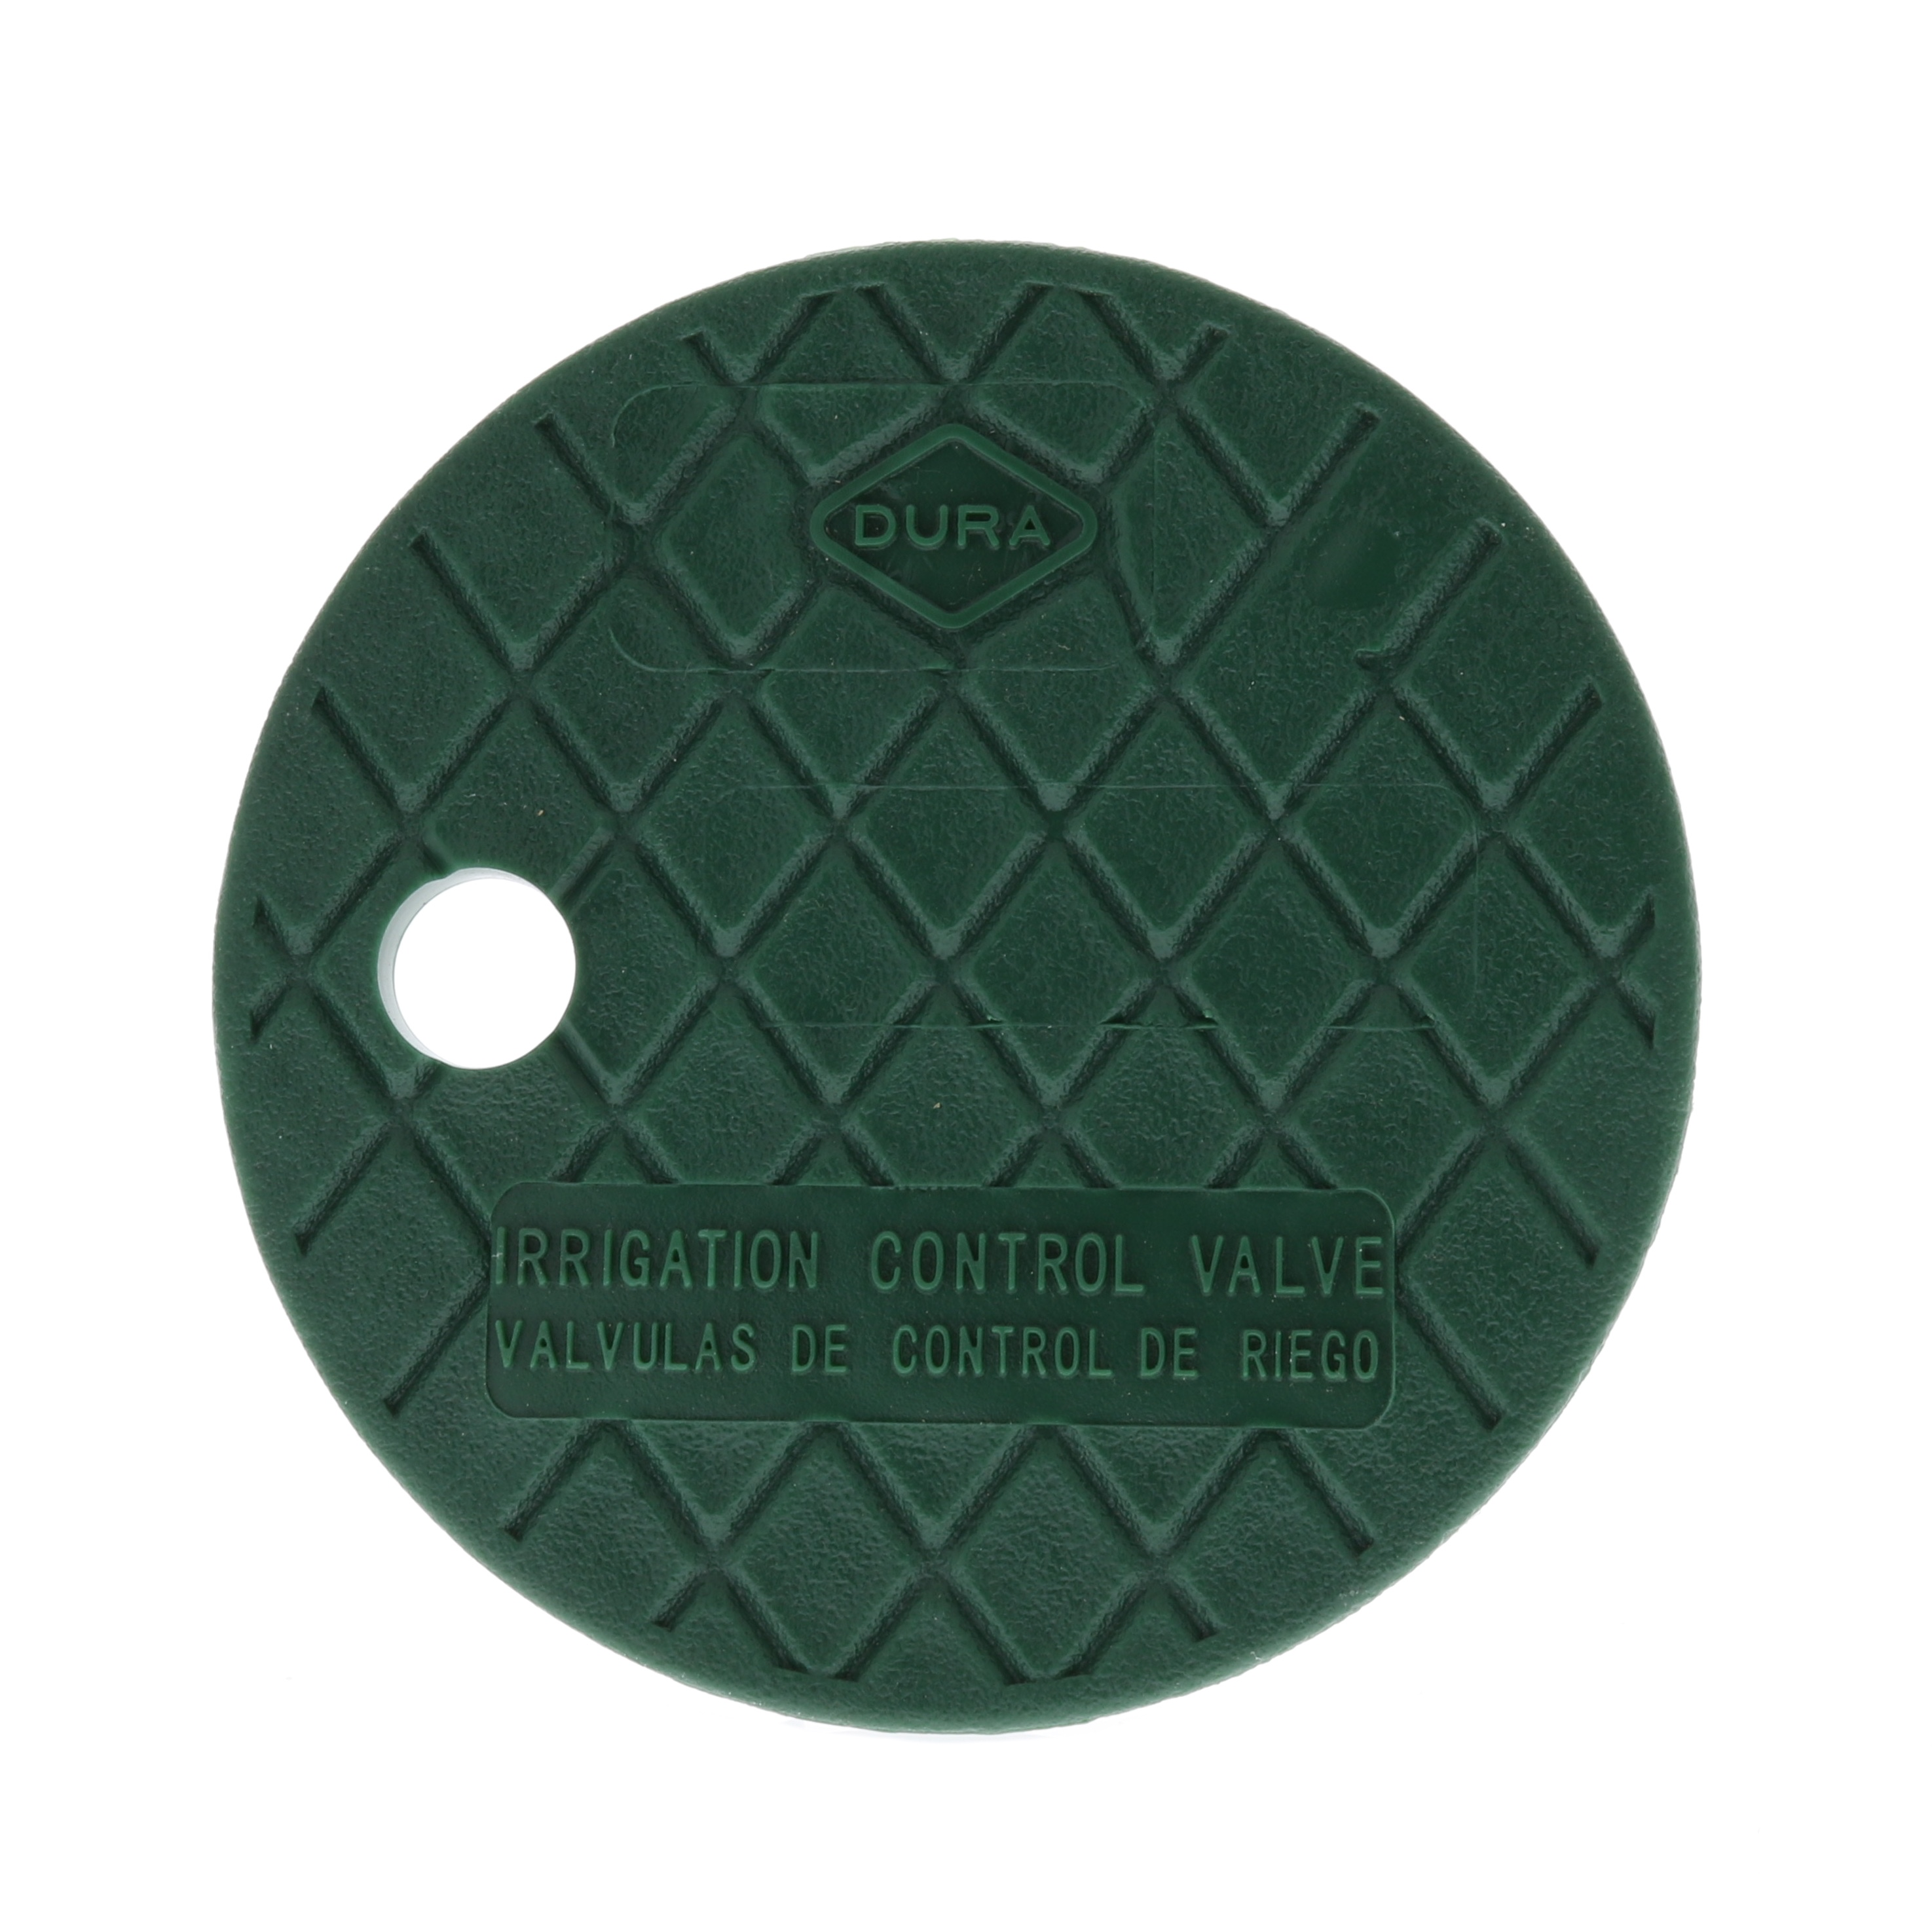 "Dura Round Sprinkler Valve Box Replacement Lids Size 6"" Color Green by"